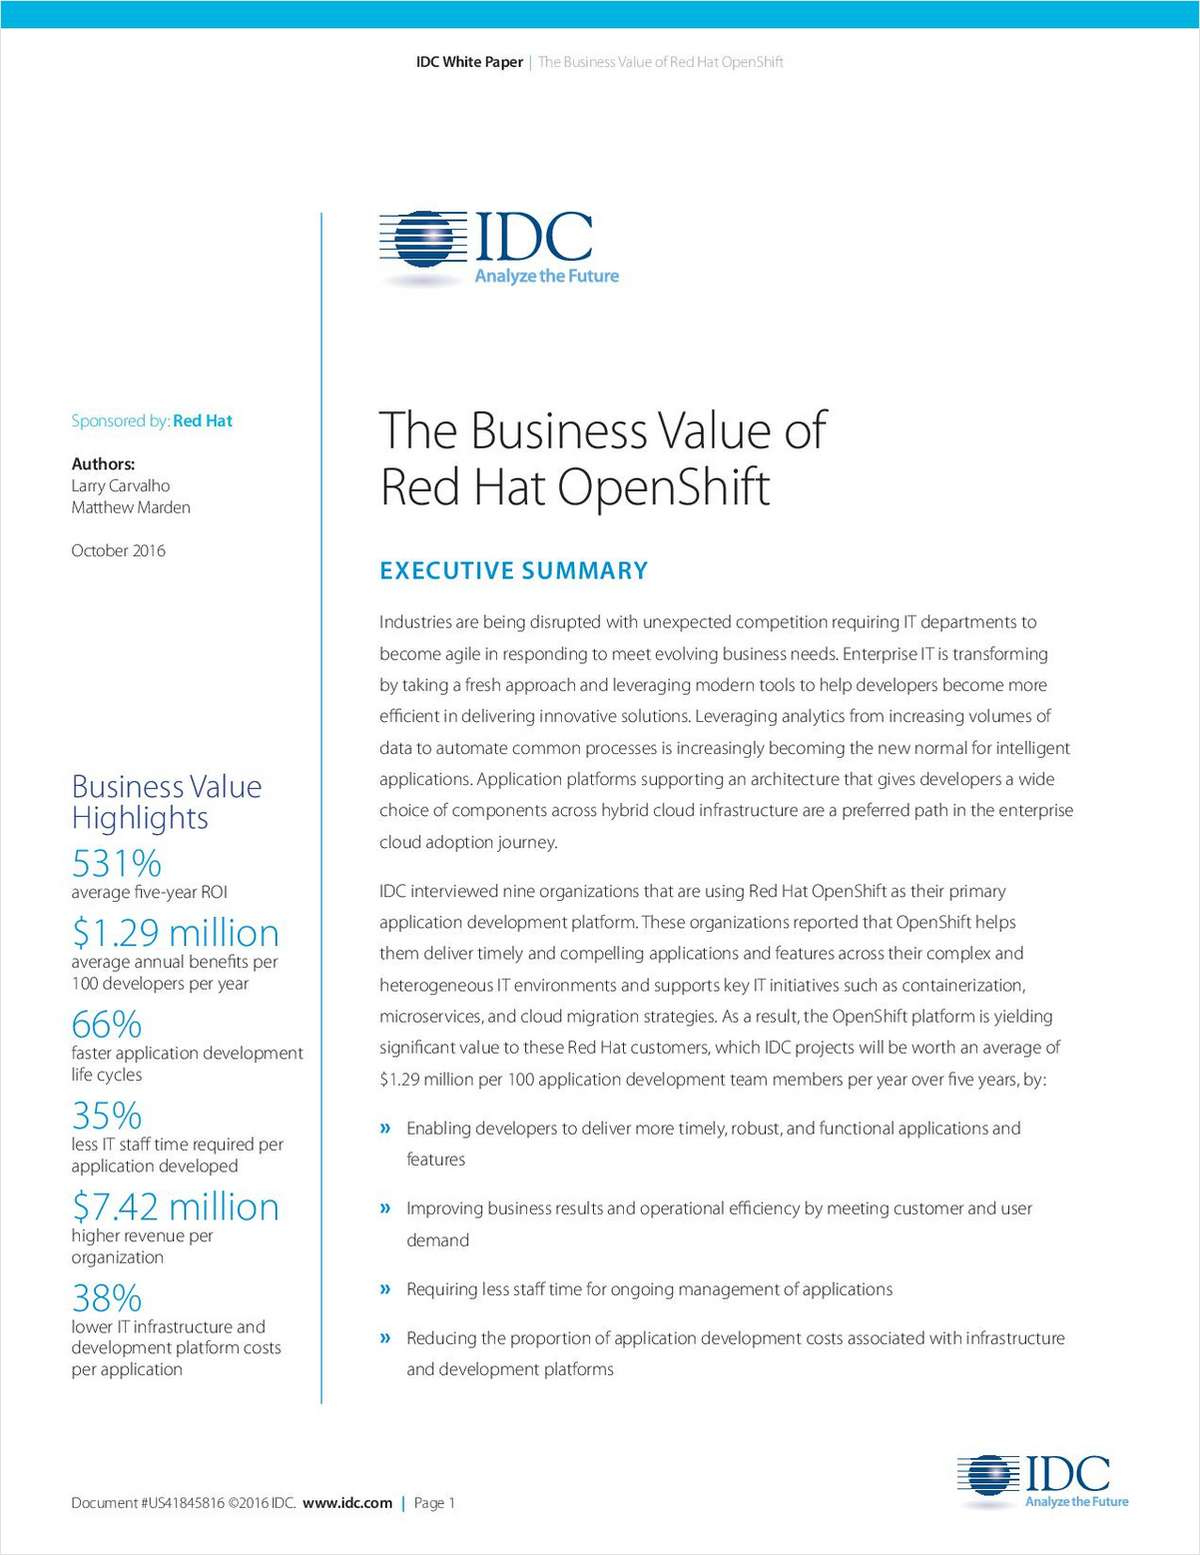 IDC: The Business Value of Red Hat OpenShift